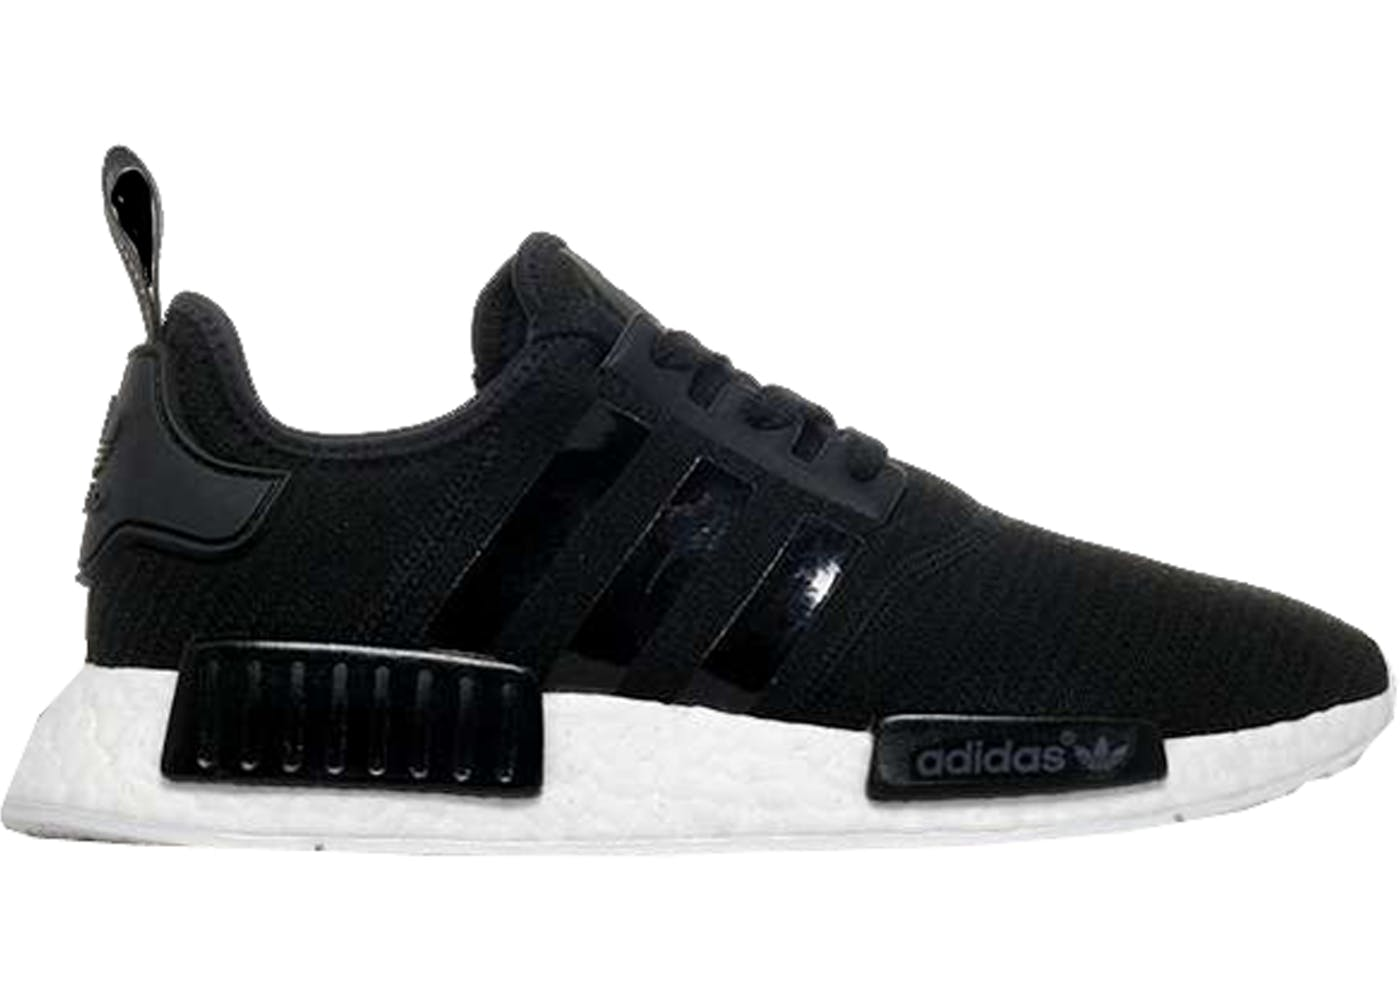 9d0c8049853f0e adidas NMD R1 White Black Flyknit Trainer